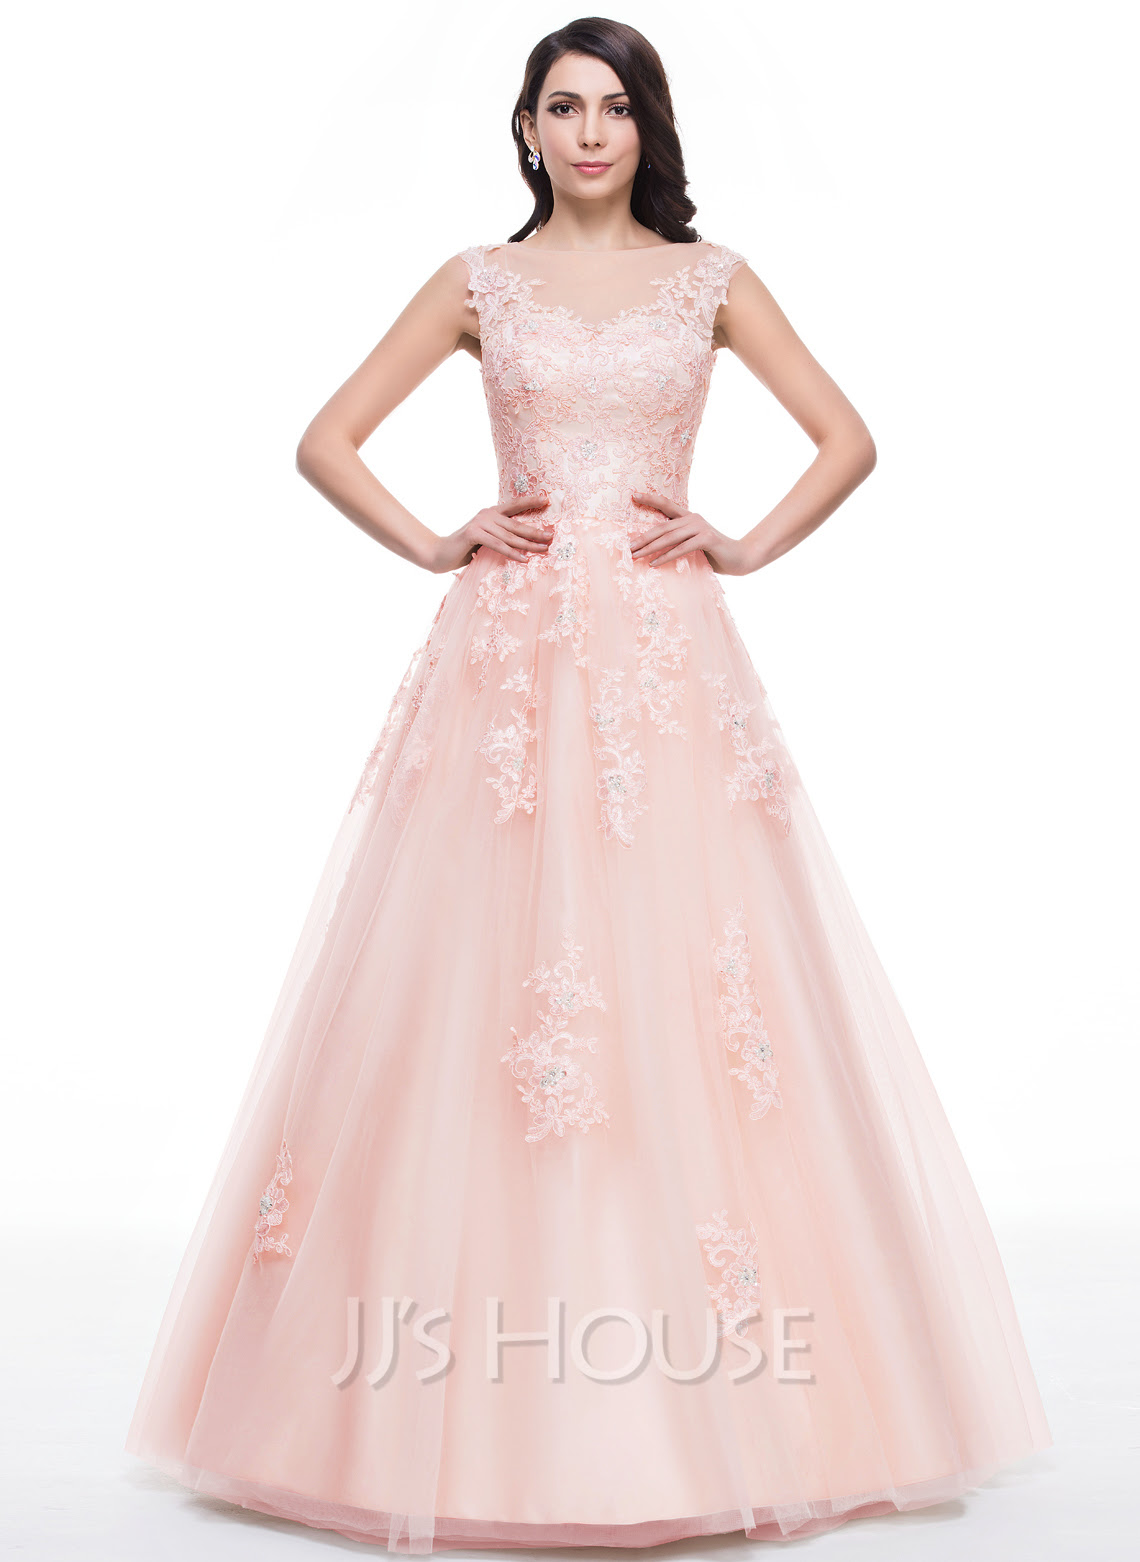 Ball-Gown Scoop Neck Floor-Length Tulle Prom Dress With Lace Beading Sequins (018059416) - JJsHouse